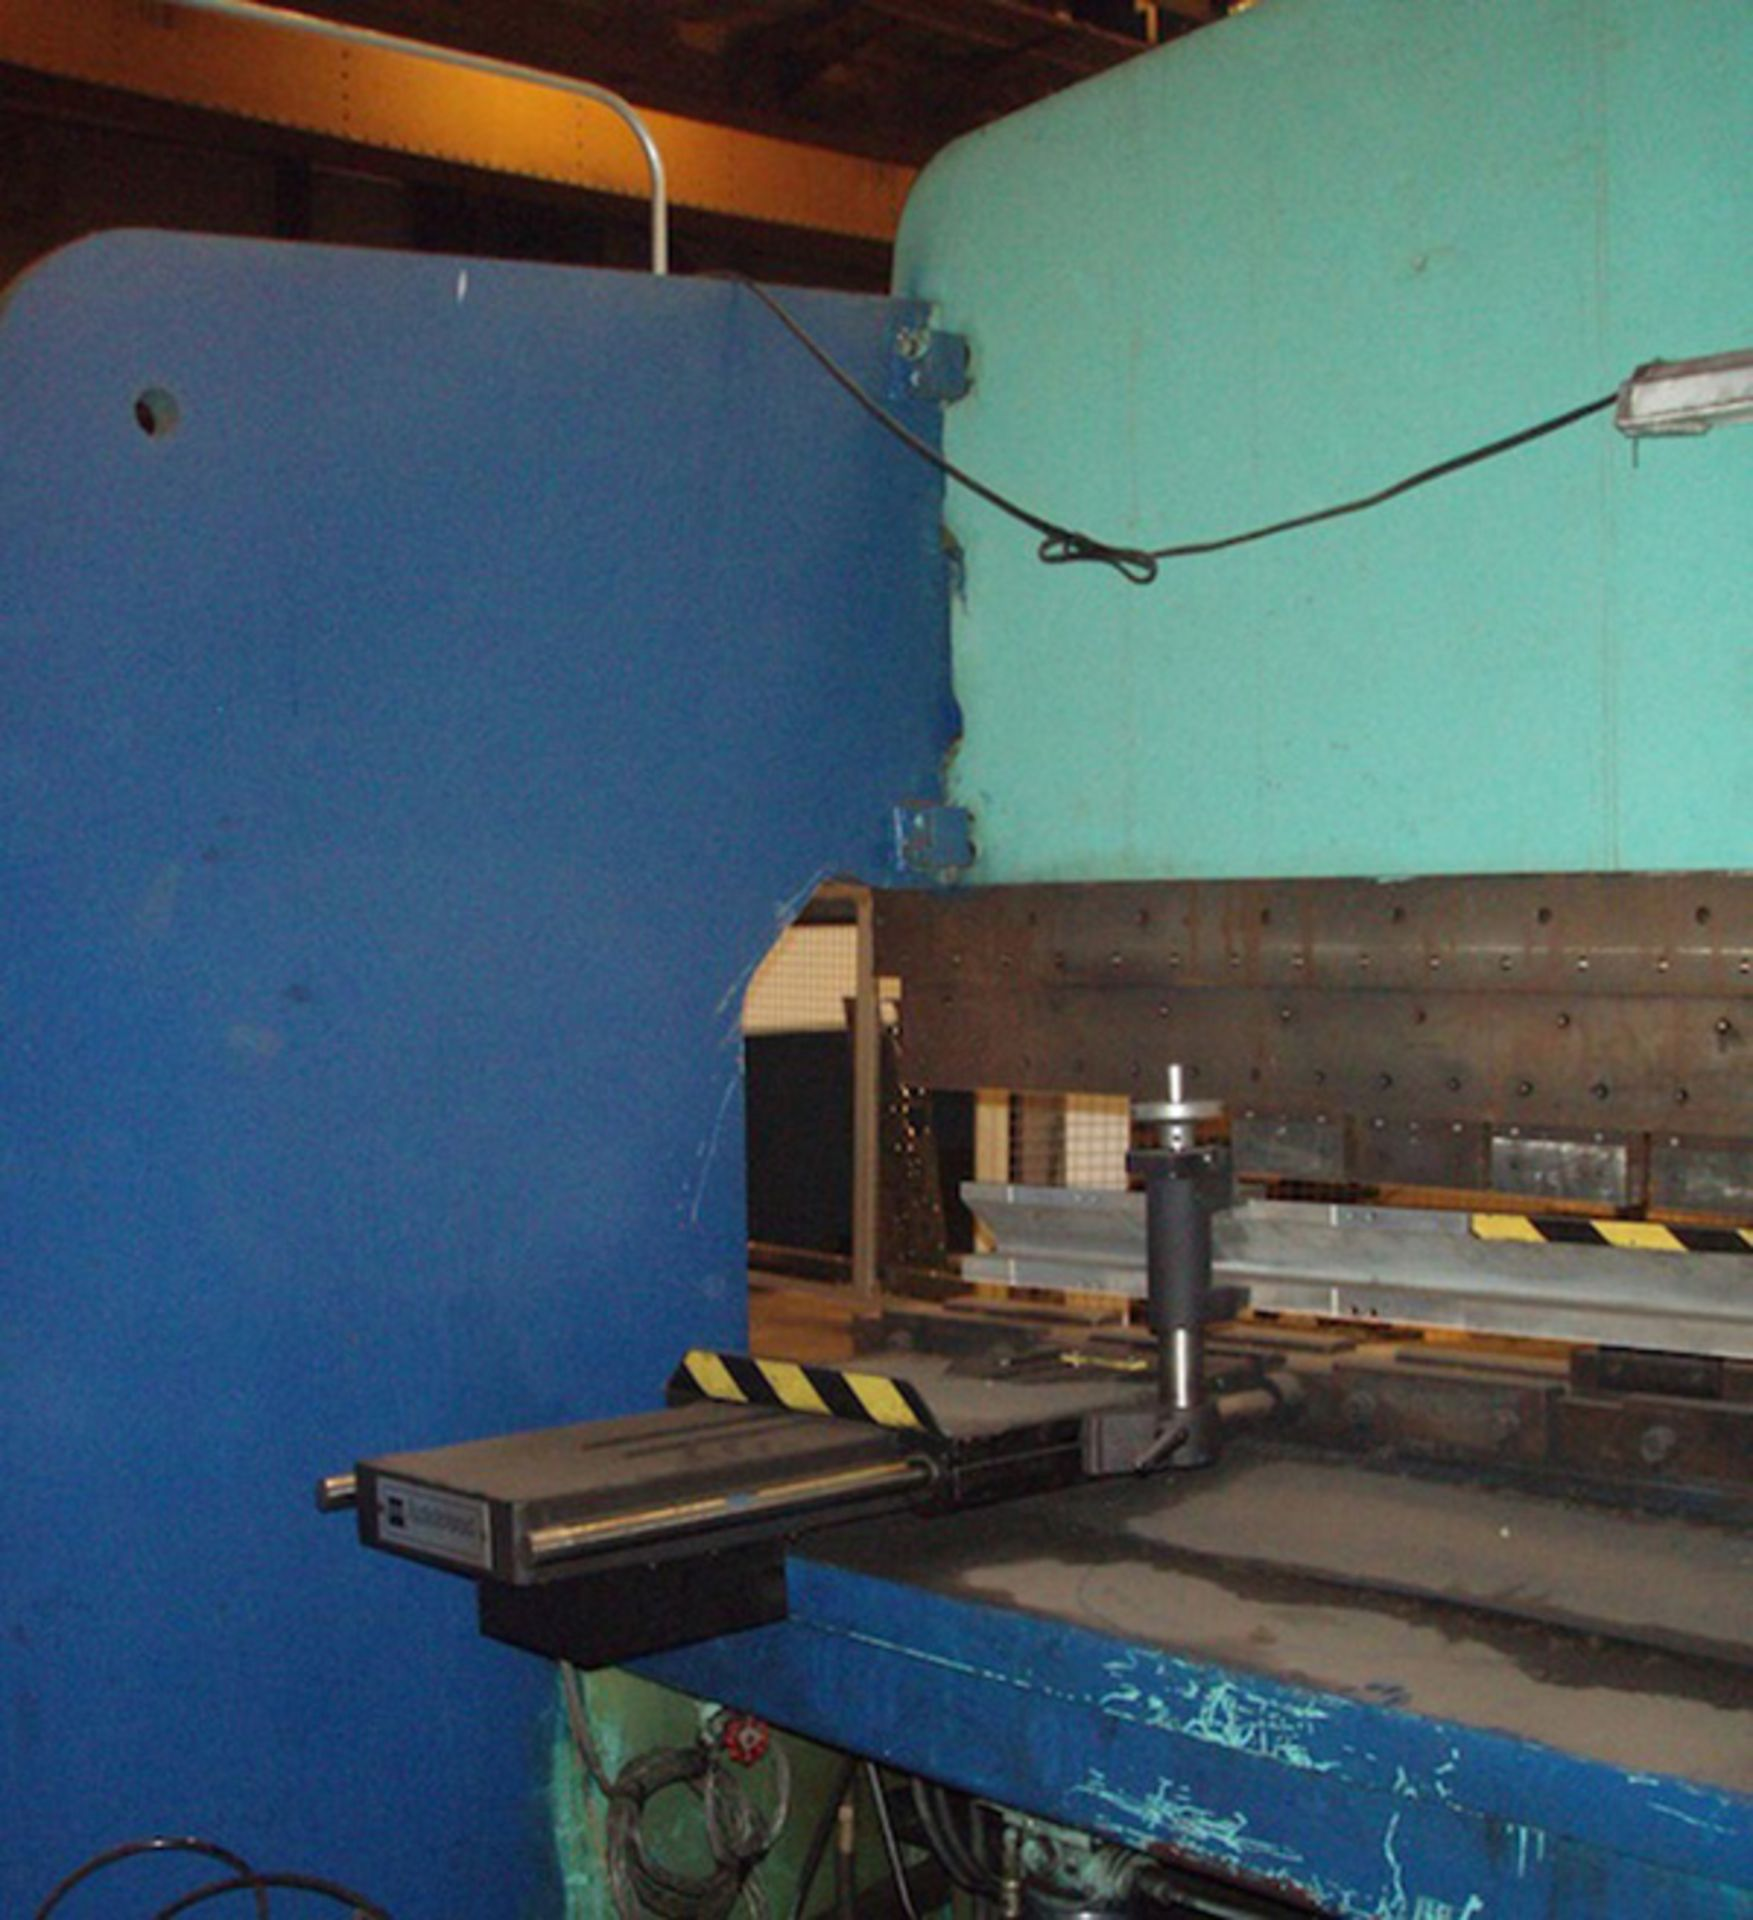 "Lot 36 - 1974 Amada Promecam CNC Hydraulic Press Brake | 200-Ton x 13' 3"", Mdl: RG204, S/N: 330200401A9 -"